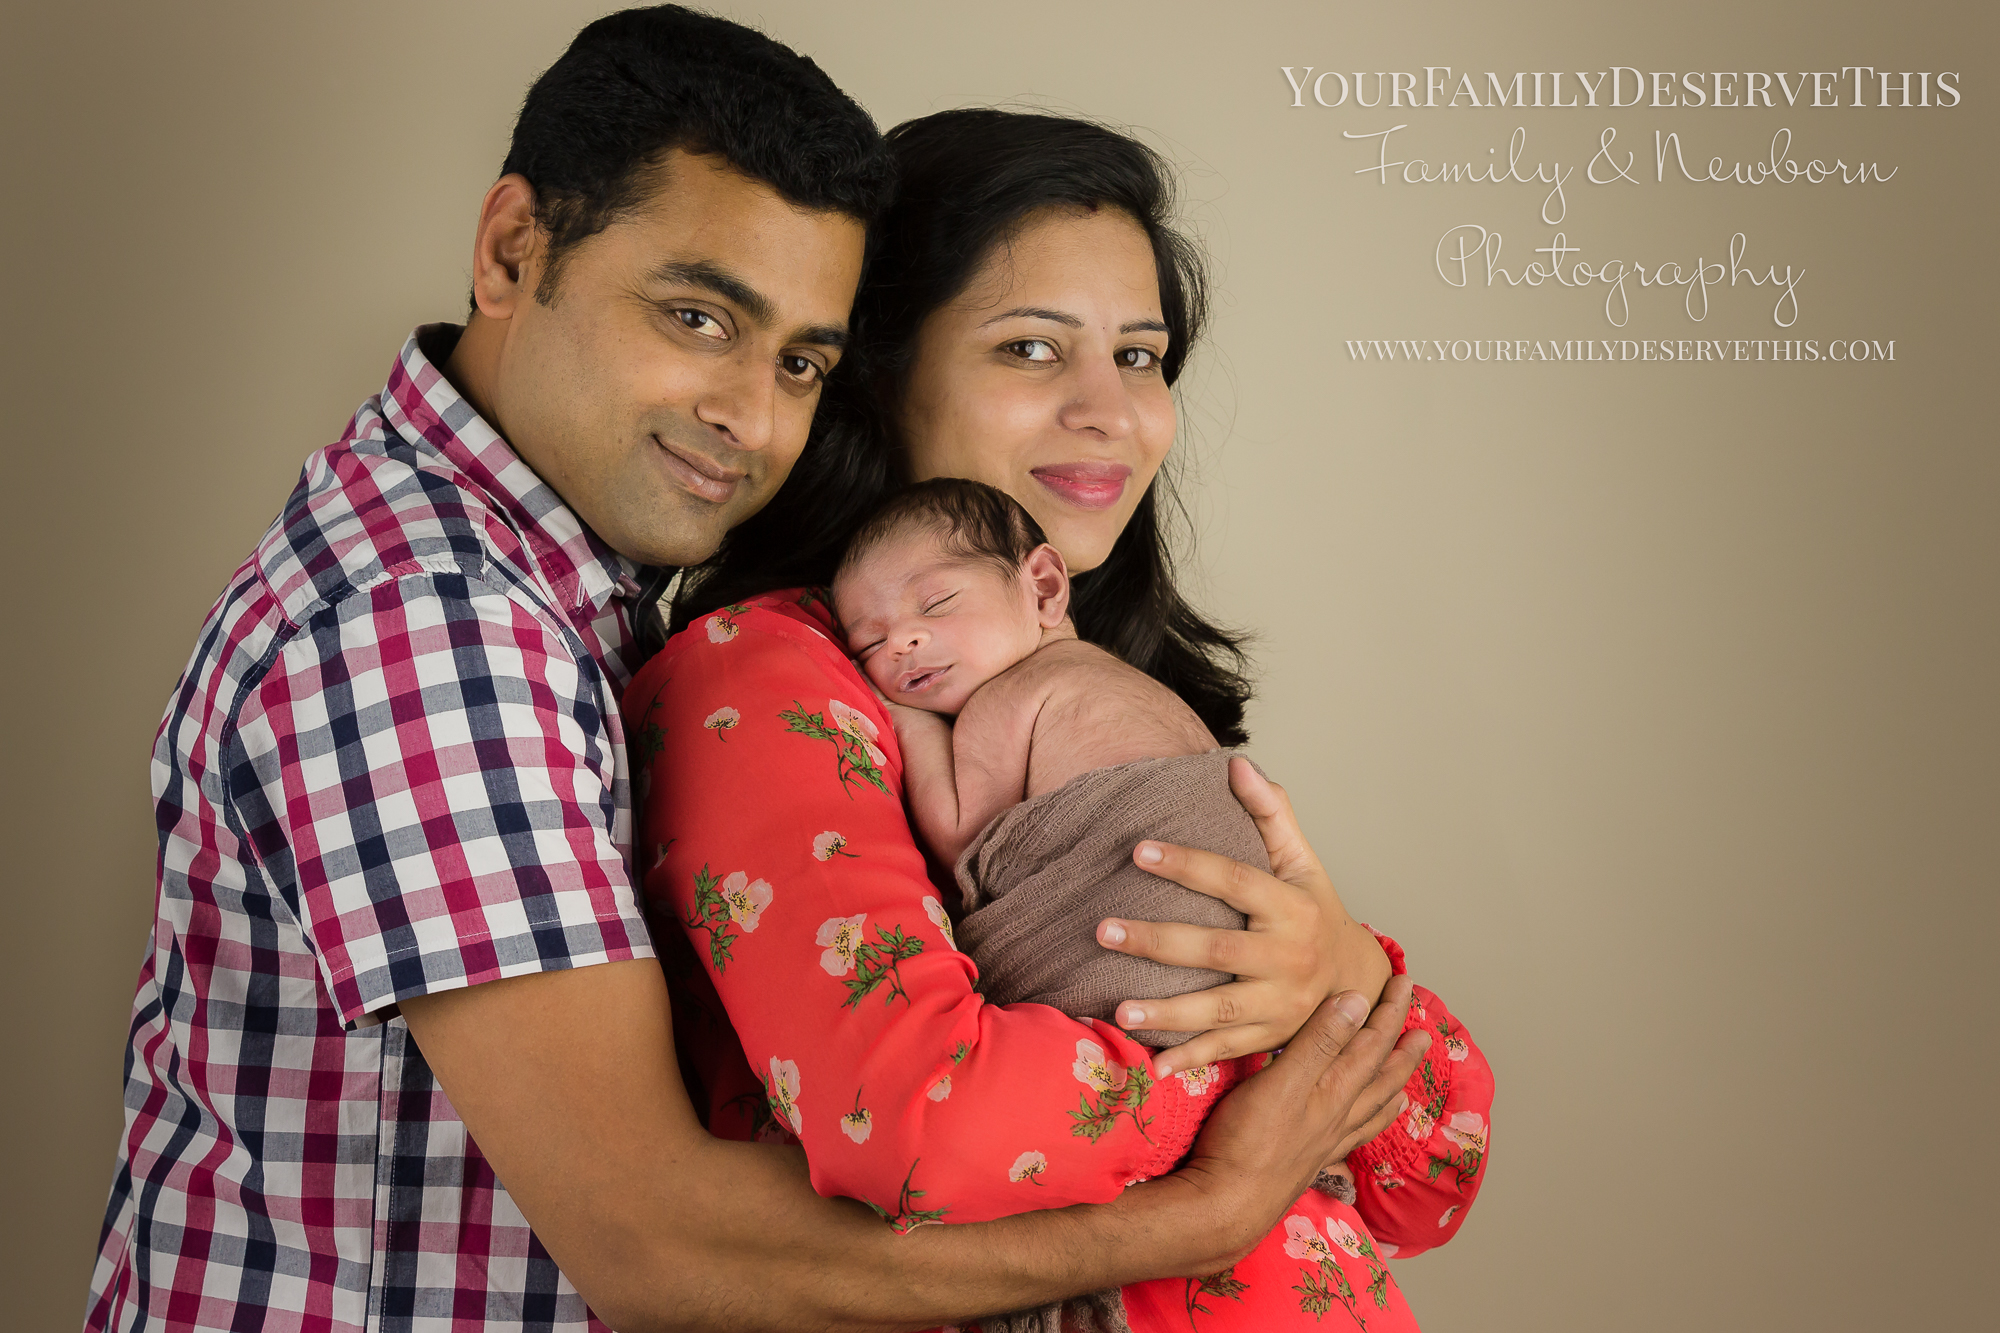 Proud new parents, cuddling their baby son Away - www.yourfamilydeservethis.com